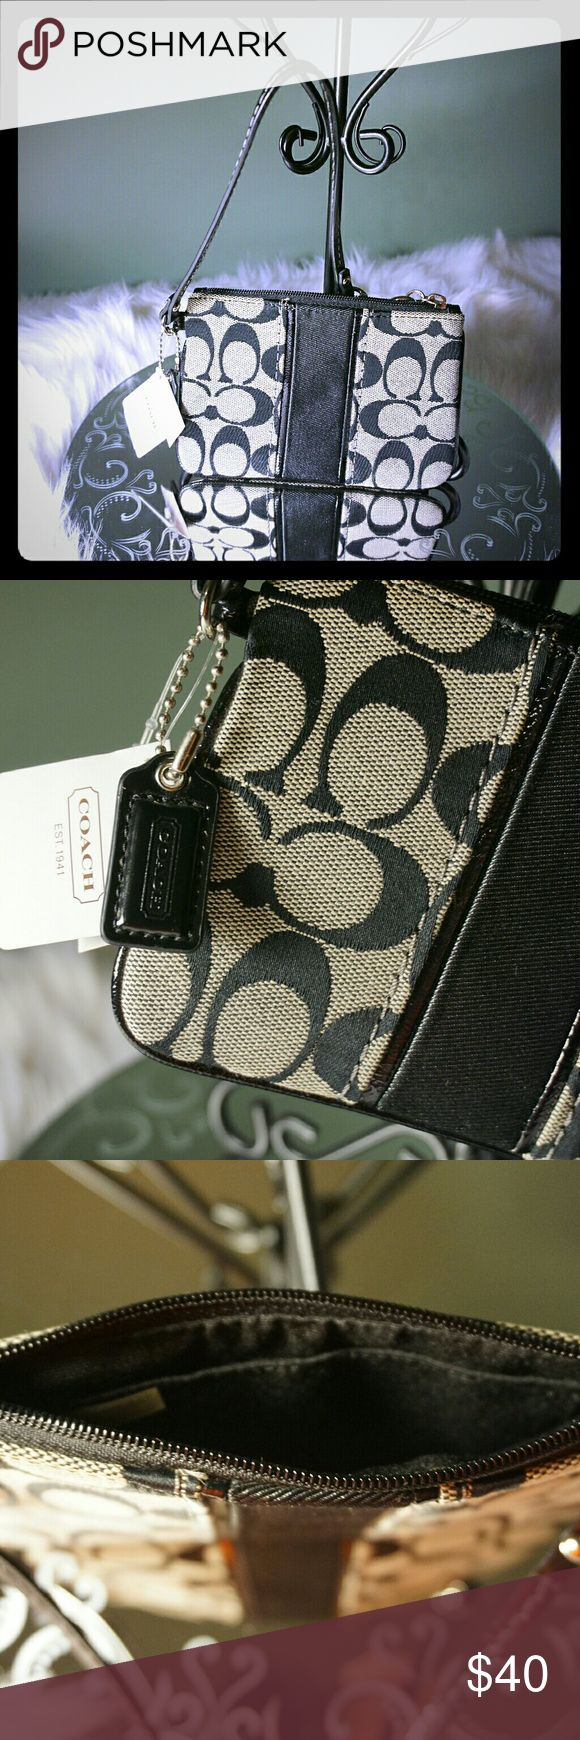 Coach Wristlet NWT Beautiful brand new signature vertical Stripe Coach Wristlet 6.5 Wide by 4.5 Inches High. Perfect for I'D, Credit Cards, Cash or to keep valuables safe inside a larger bag. Coach Wristlet MSRP $58.00. Price section removed from tag as was previous never used gift. Coach Bags Clutches & Wristlets